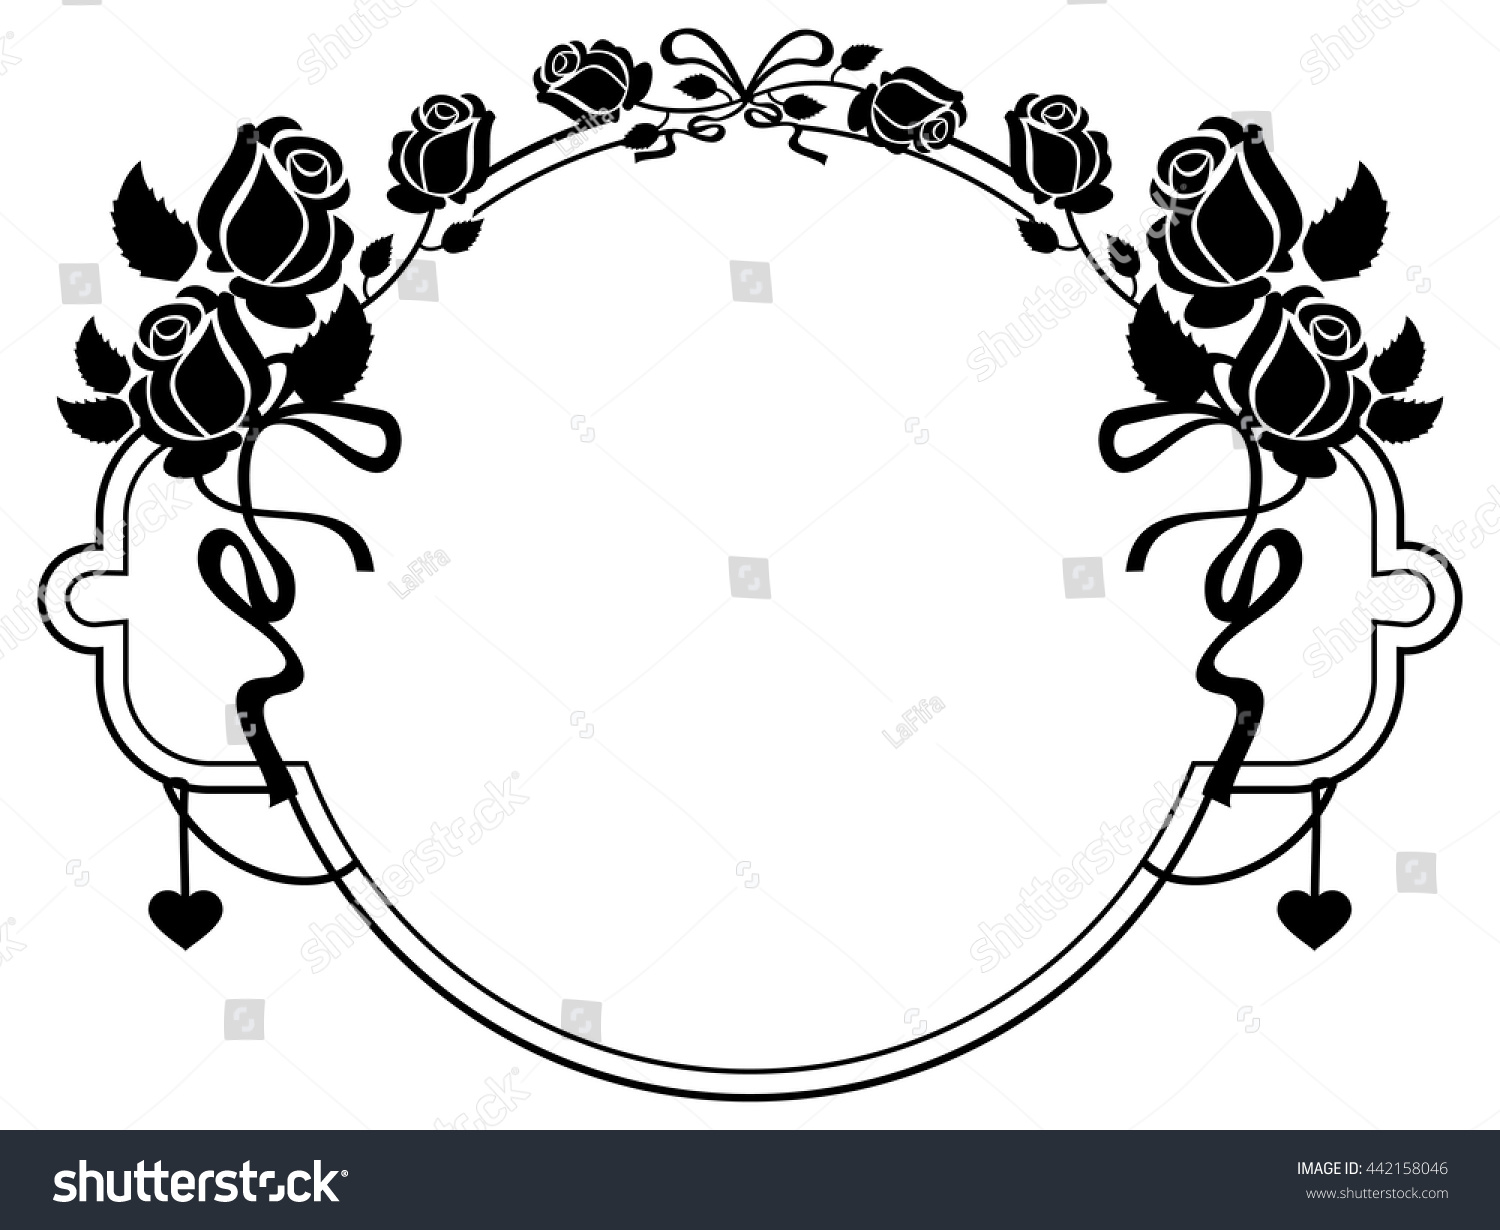 Line Art Rose Flower : Bouquet with roses and daisies traditional european pattern